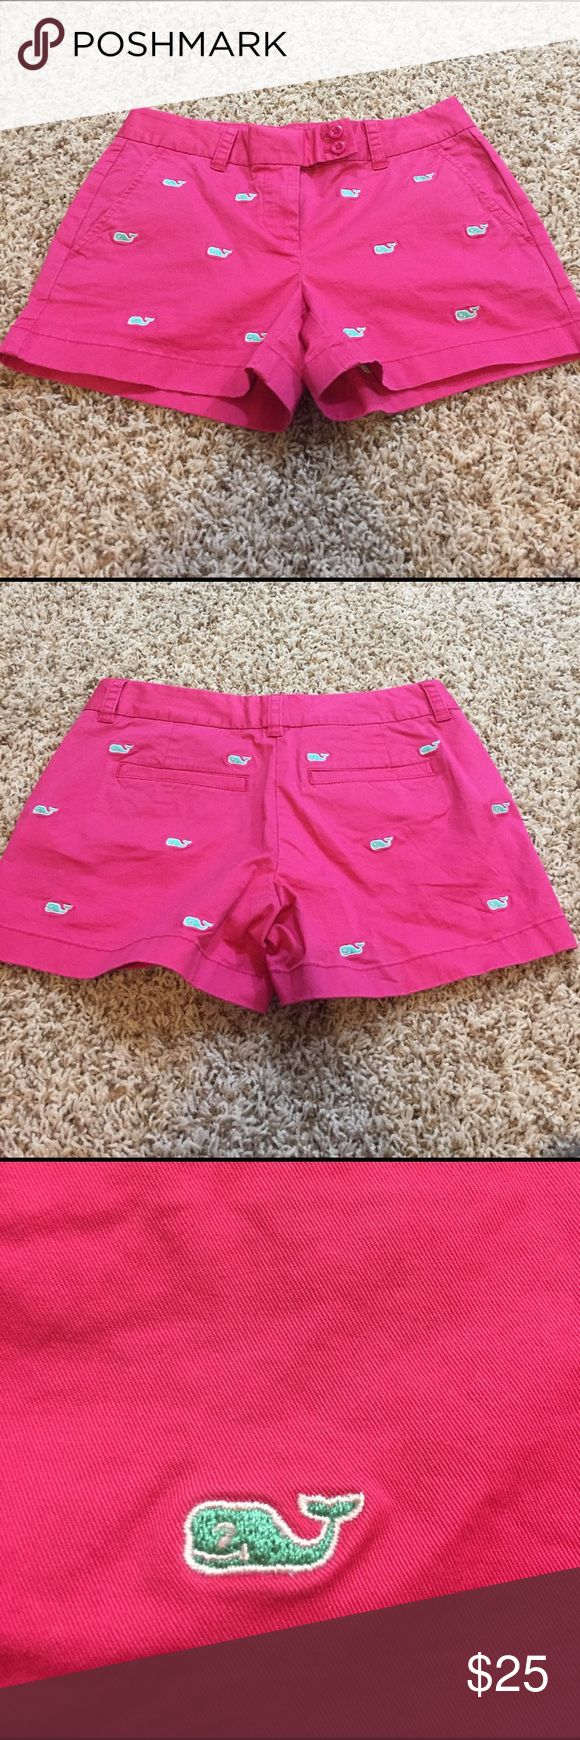 Vineyard Vines Shorts Pink Vinyard Vines shorts with little turquoise whales embroidered on them. Never worn! Vinyard Vines Shorts